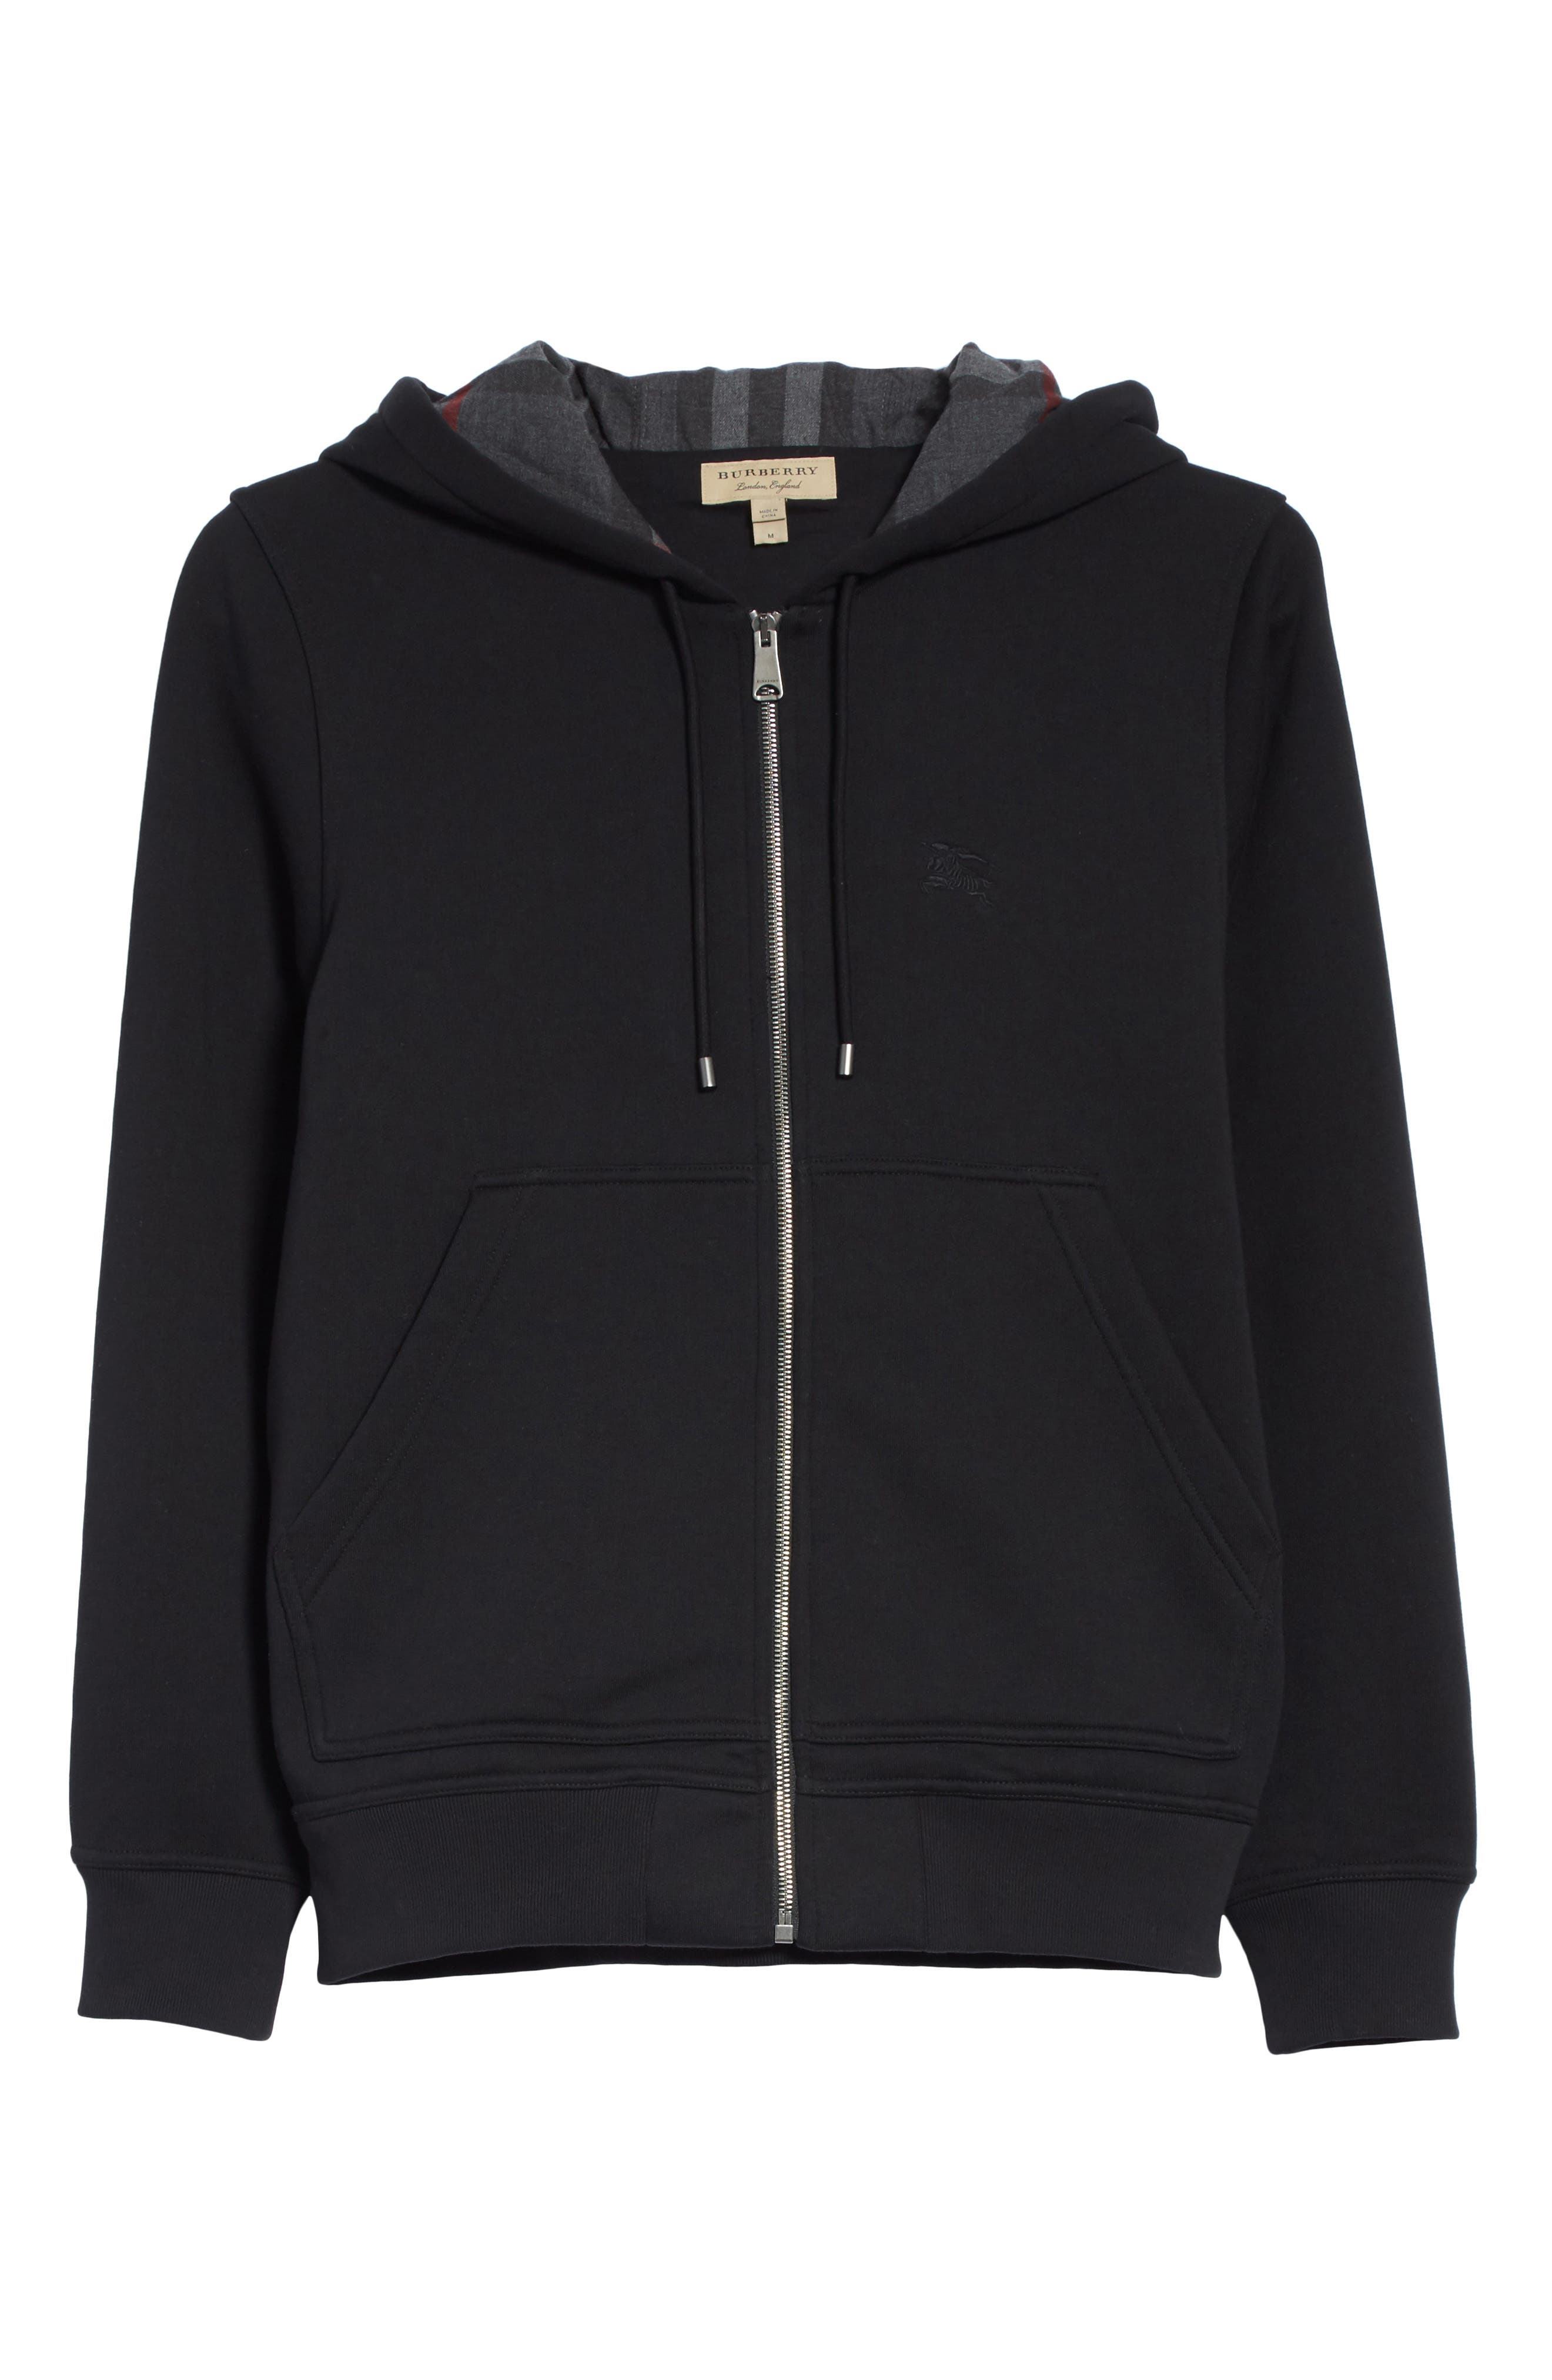 BURBERRY, Fordson Fleece Hoodie, Alternate thumbnail 6, color, BLACK